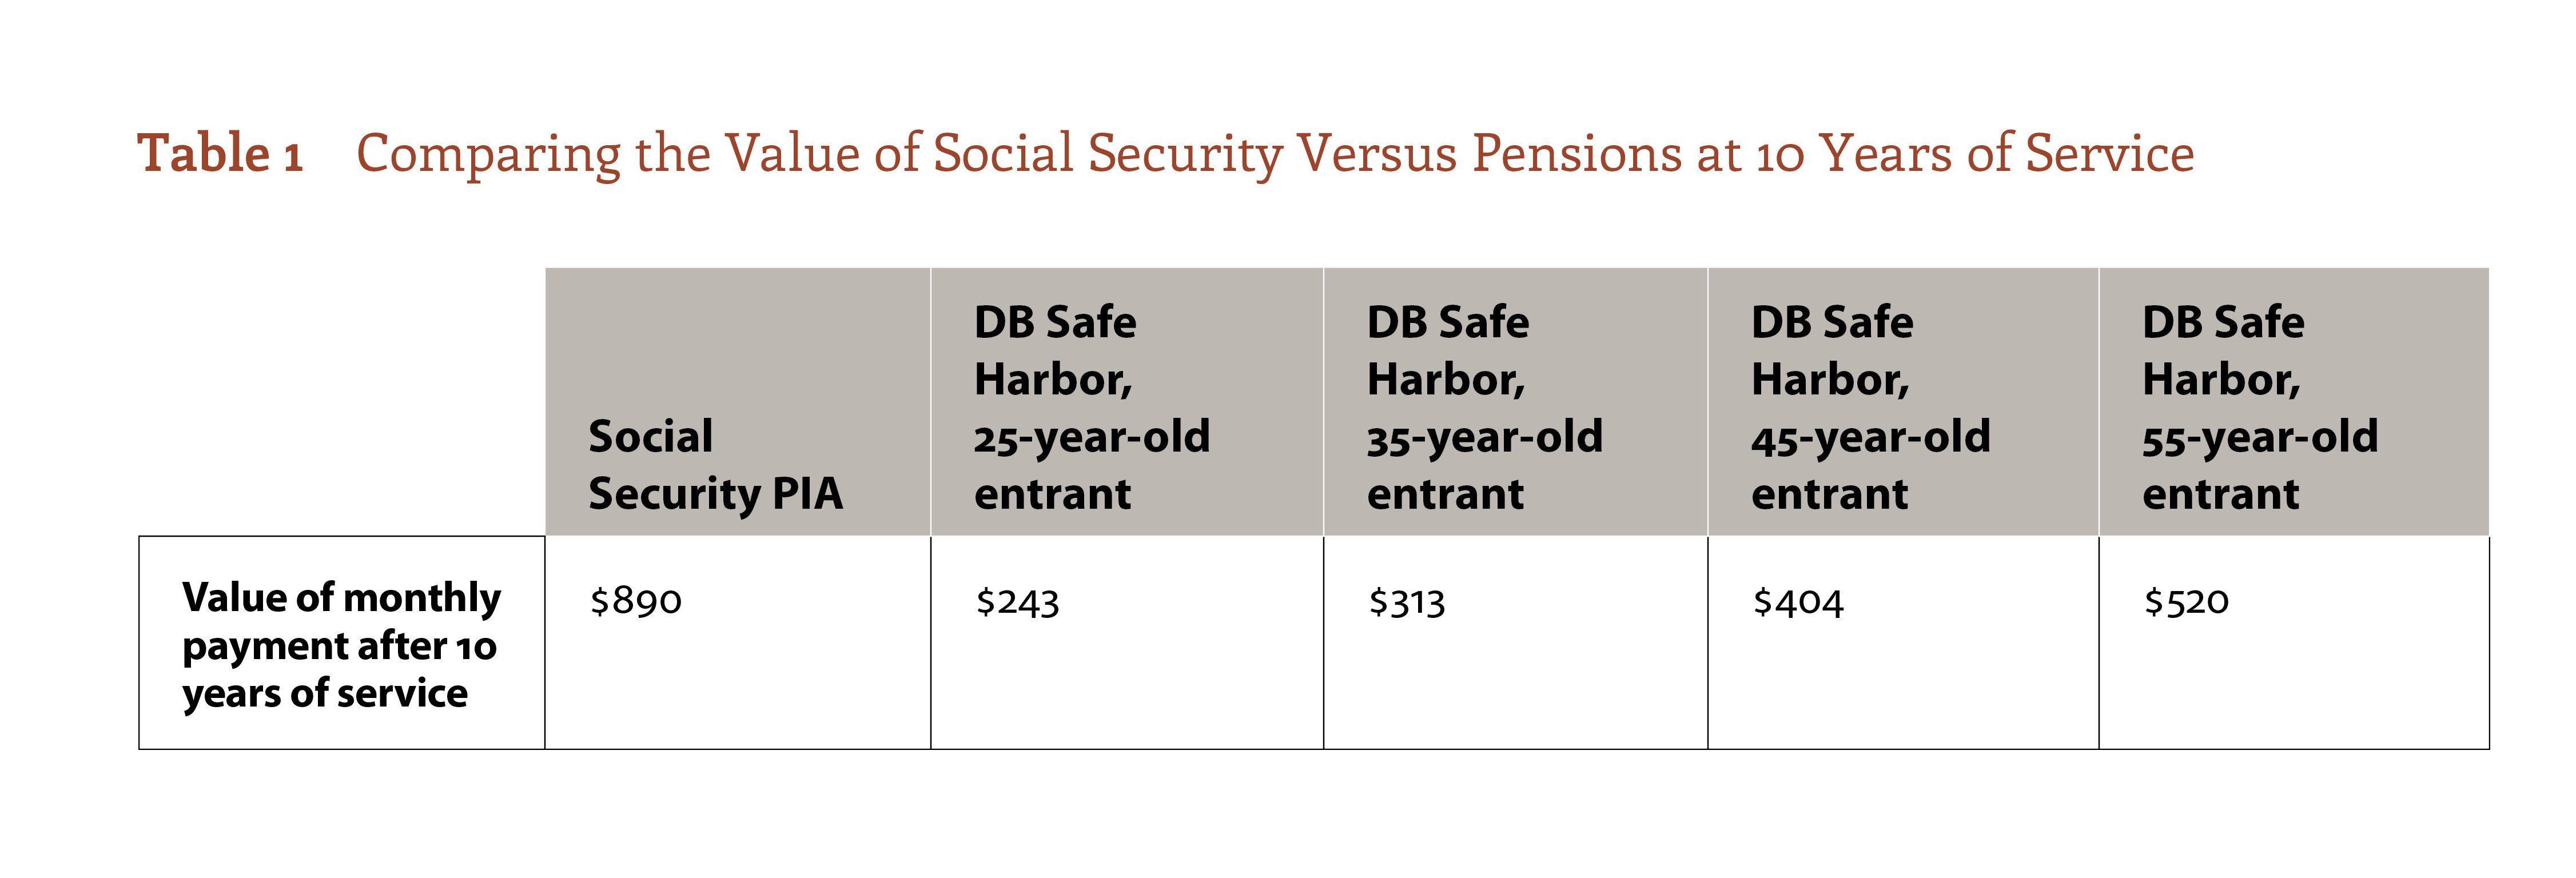 Comparing the Value of Social Security Versus Pensions at 10 Years of Service